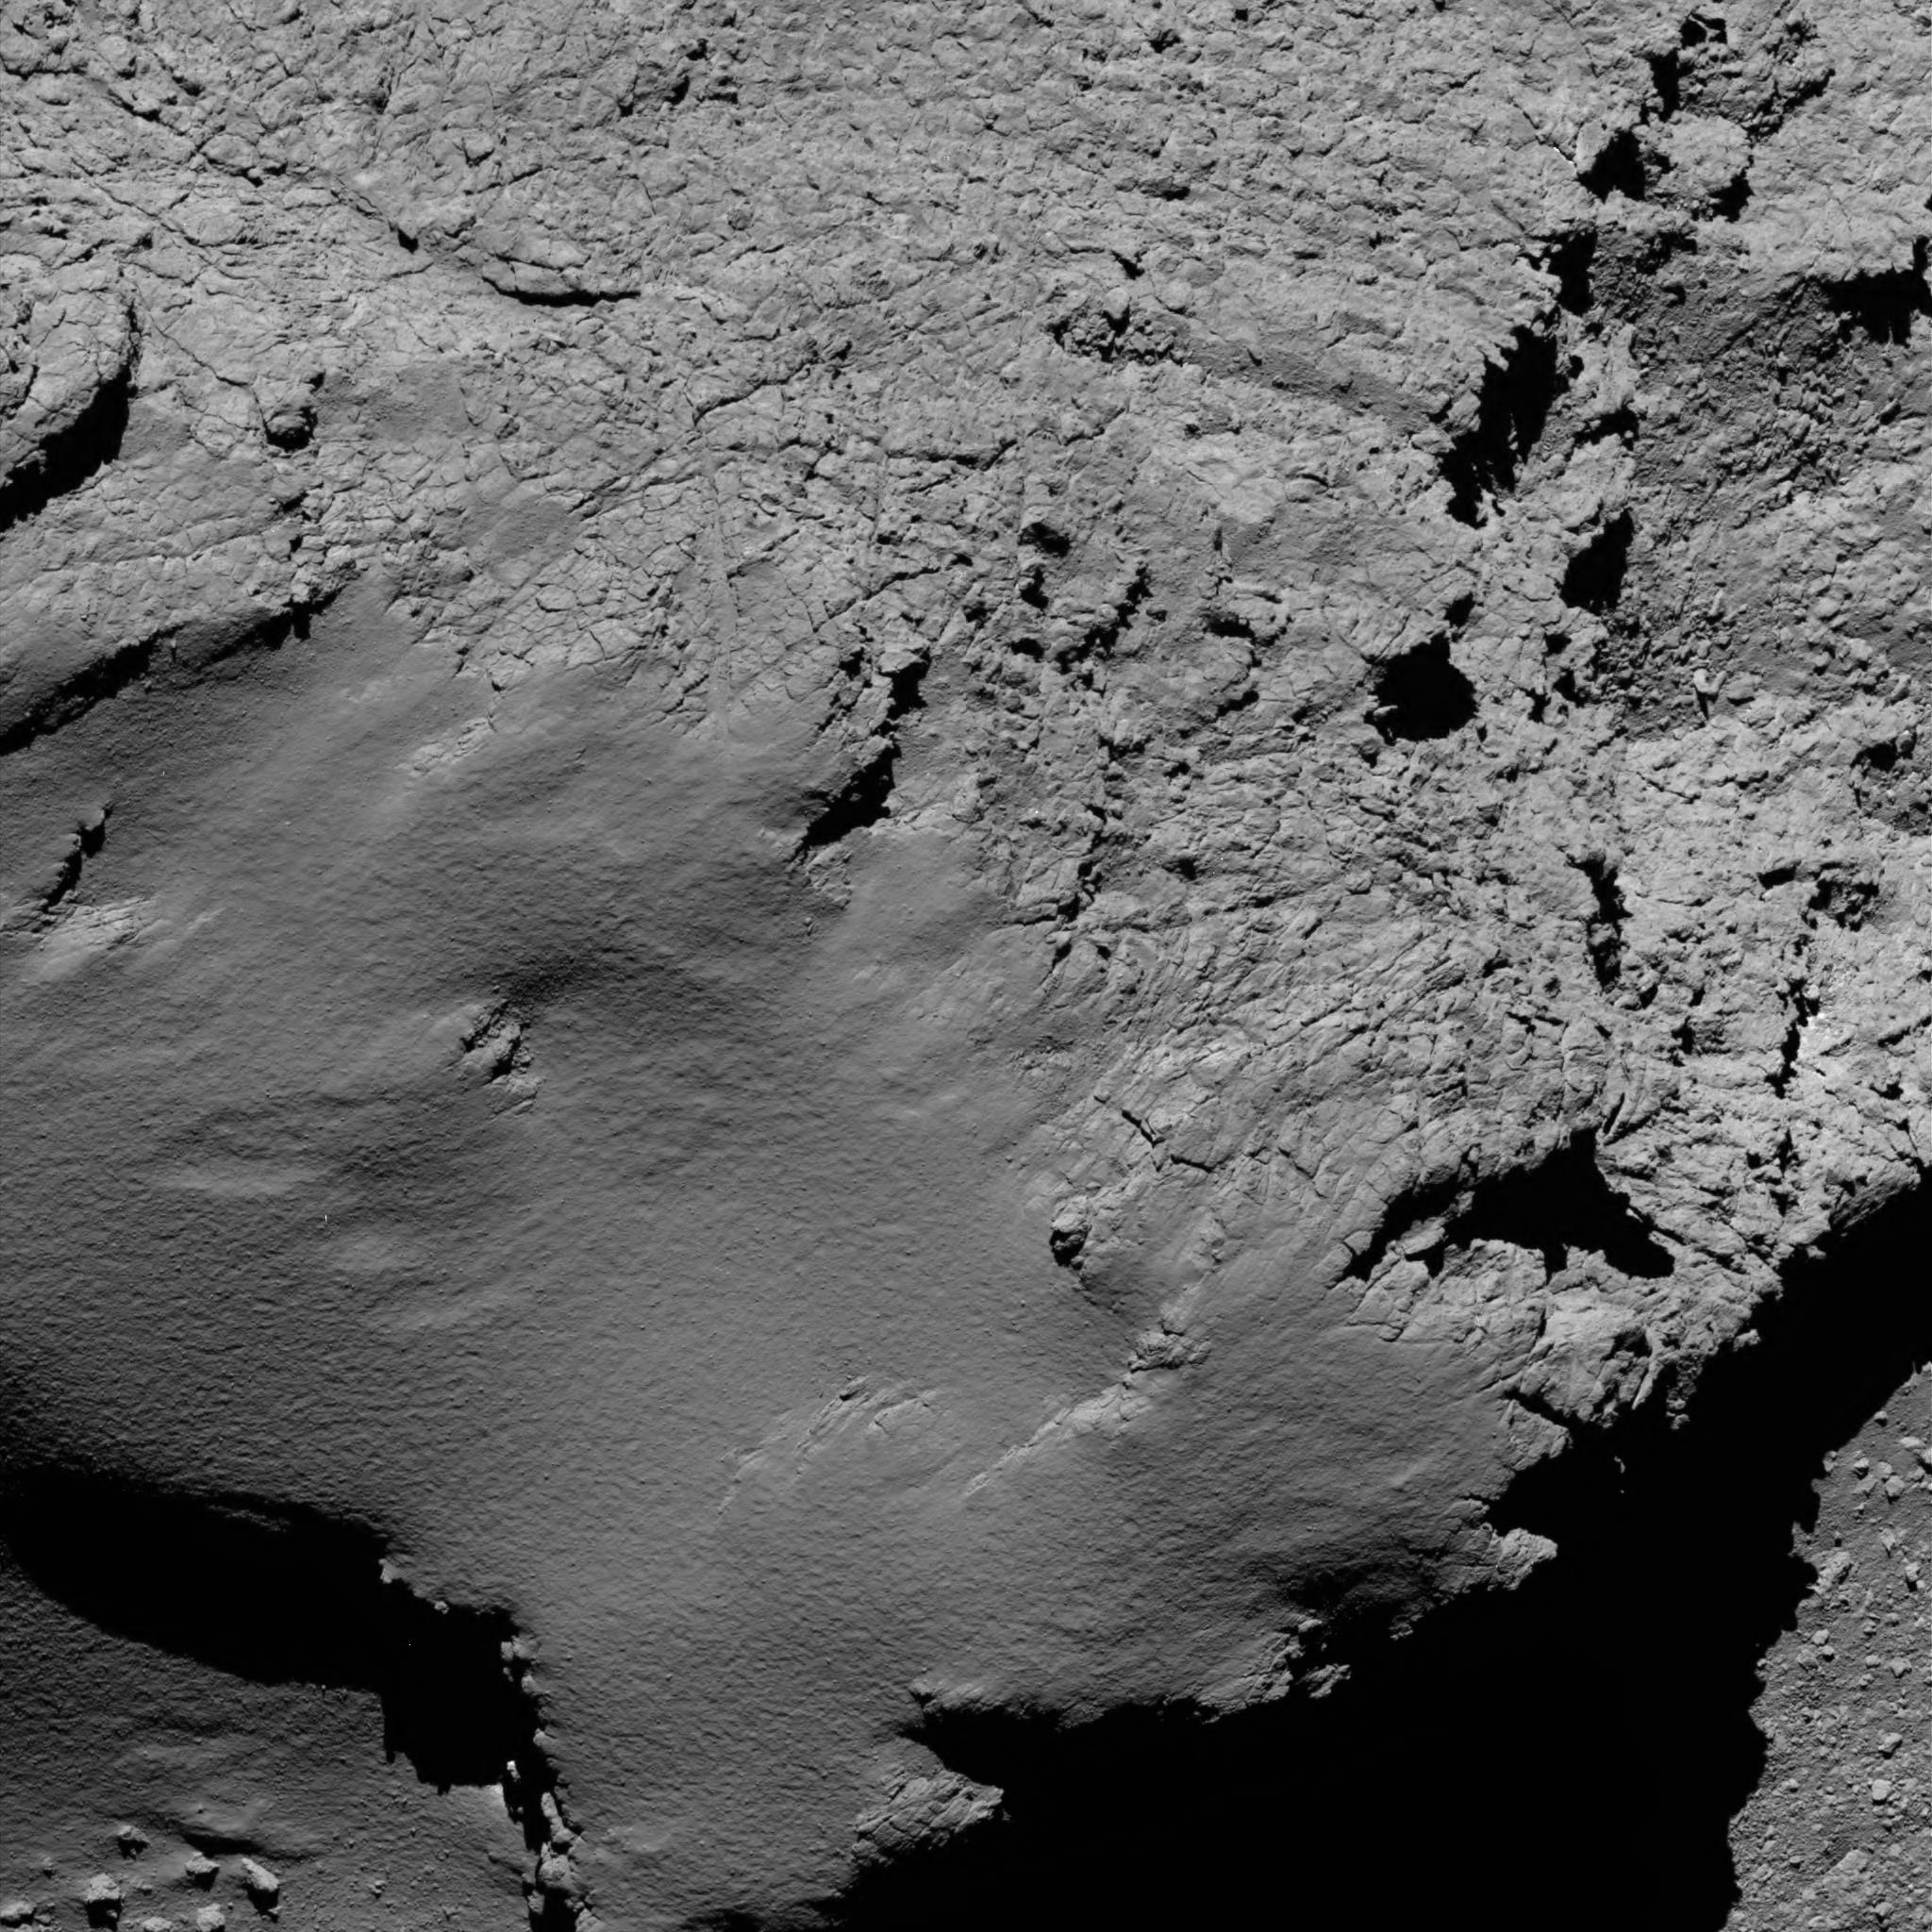 is_rosetta_atterrisage_comet_from_8.9_km_narrow-angle_camera.jpg